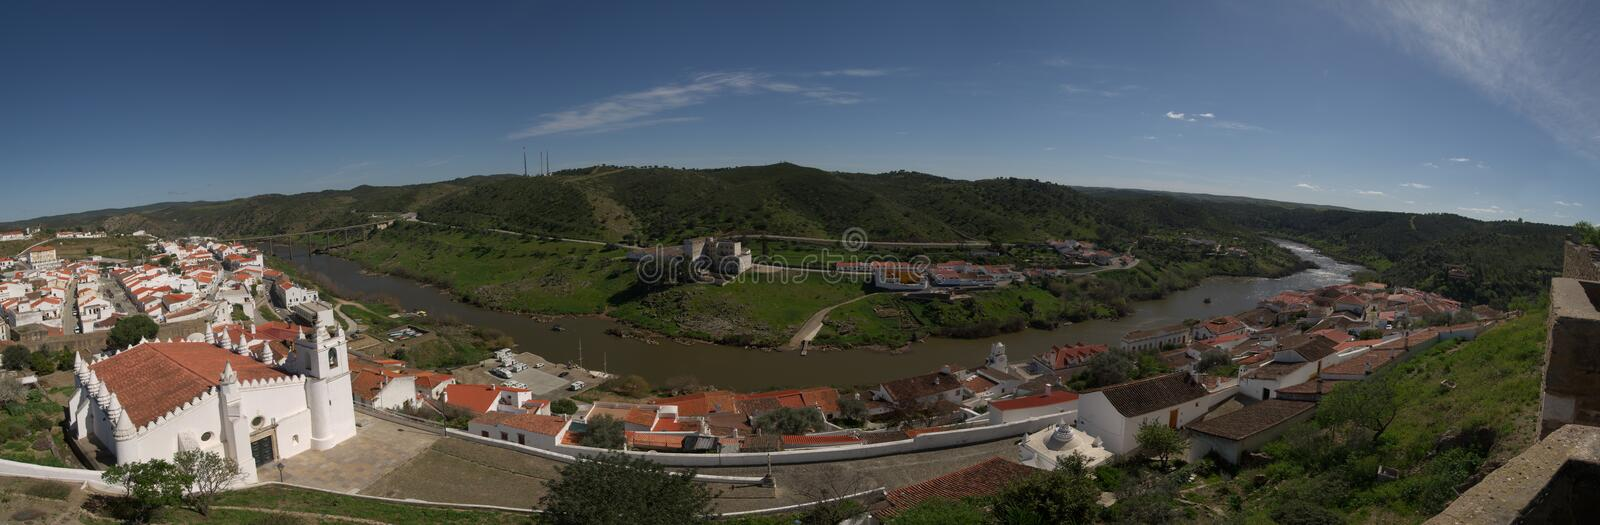 Panorama of Mertola town as seen from the castle stock photo